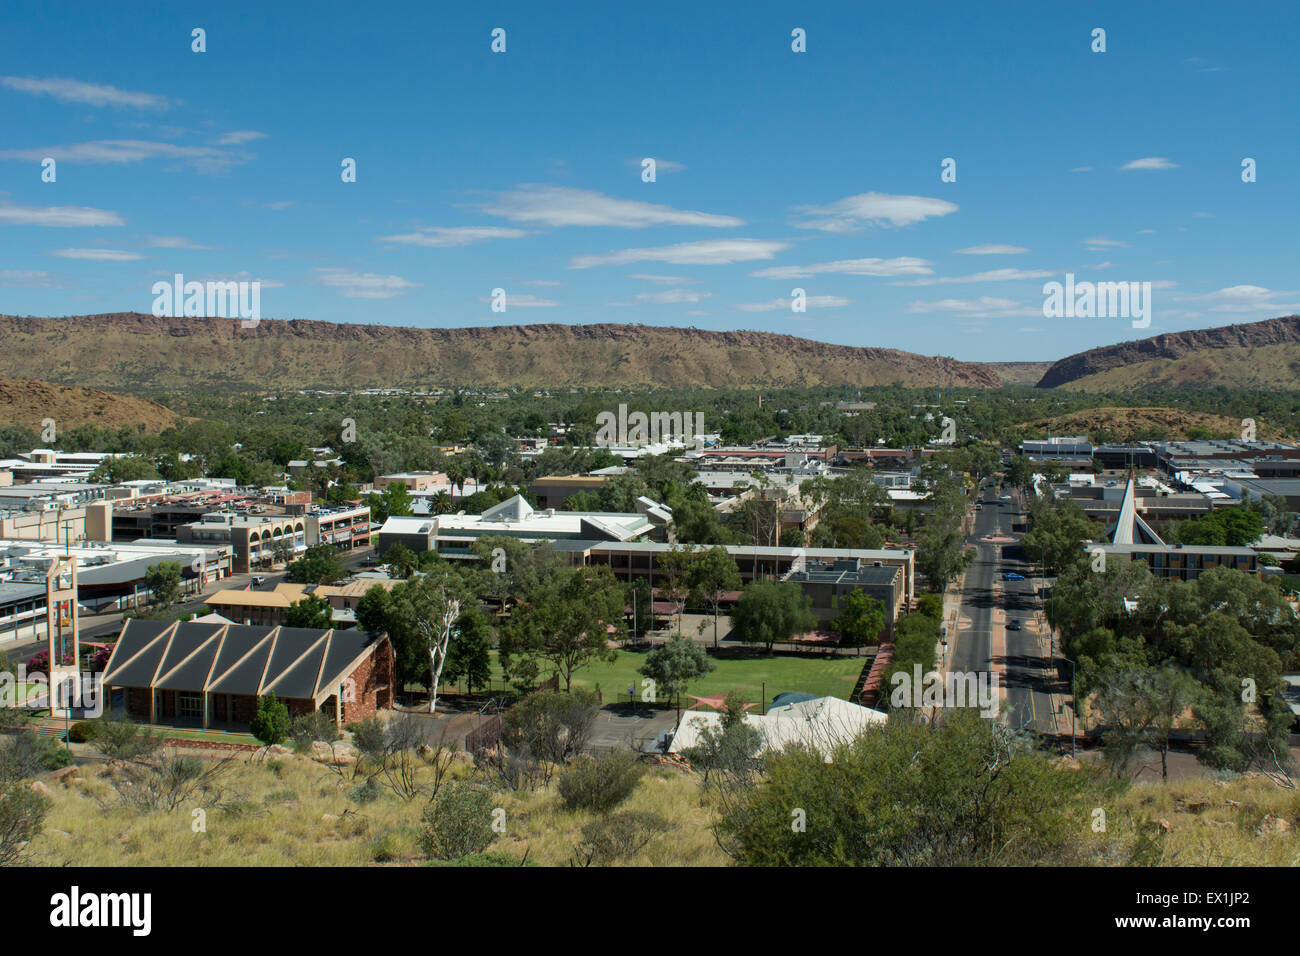 Australia, NT, Alice Springs. Anzac Hill overview point. View of downtown Alice Springs from Anzac Hill. - Stock Image